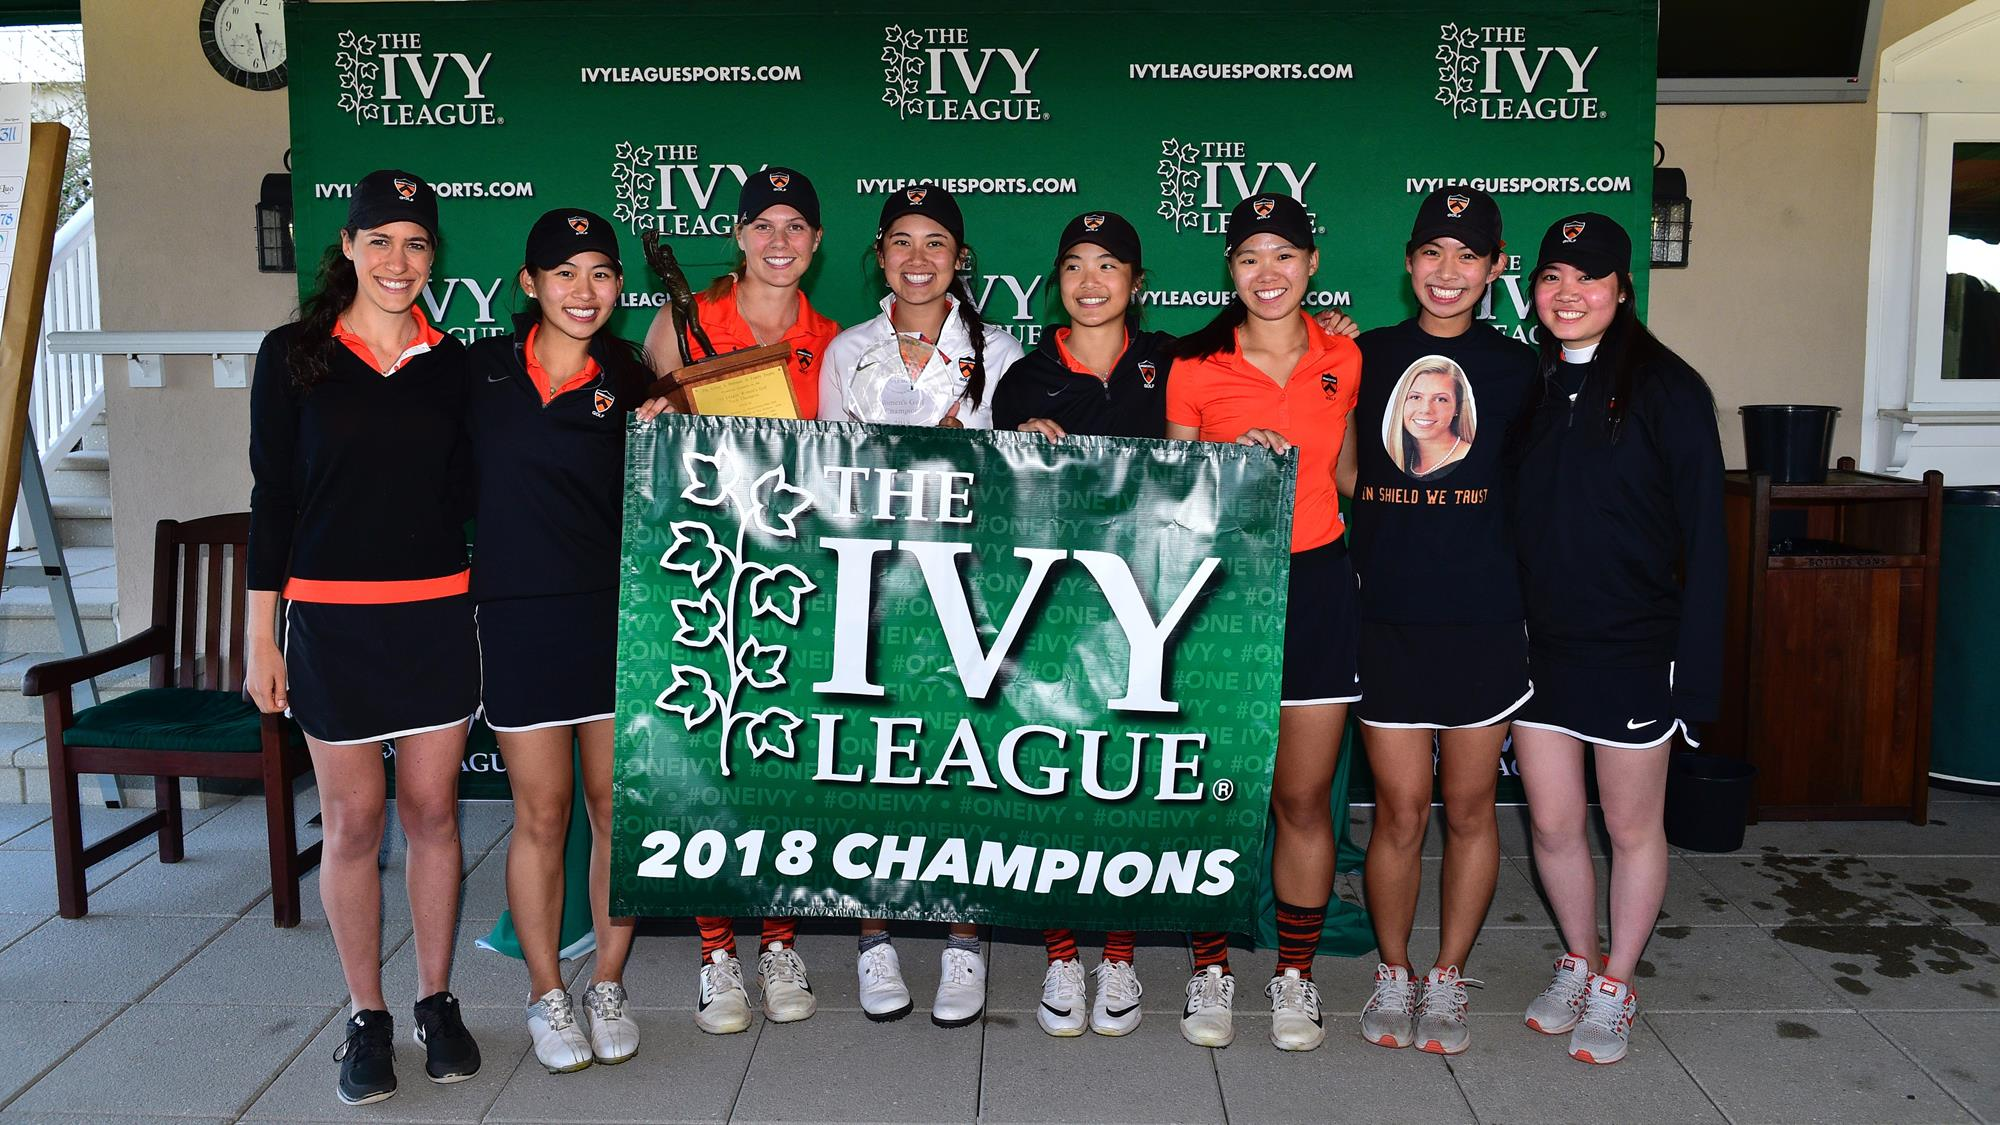 Princeton Wins Back-to-Back Ivy League Championships